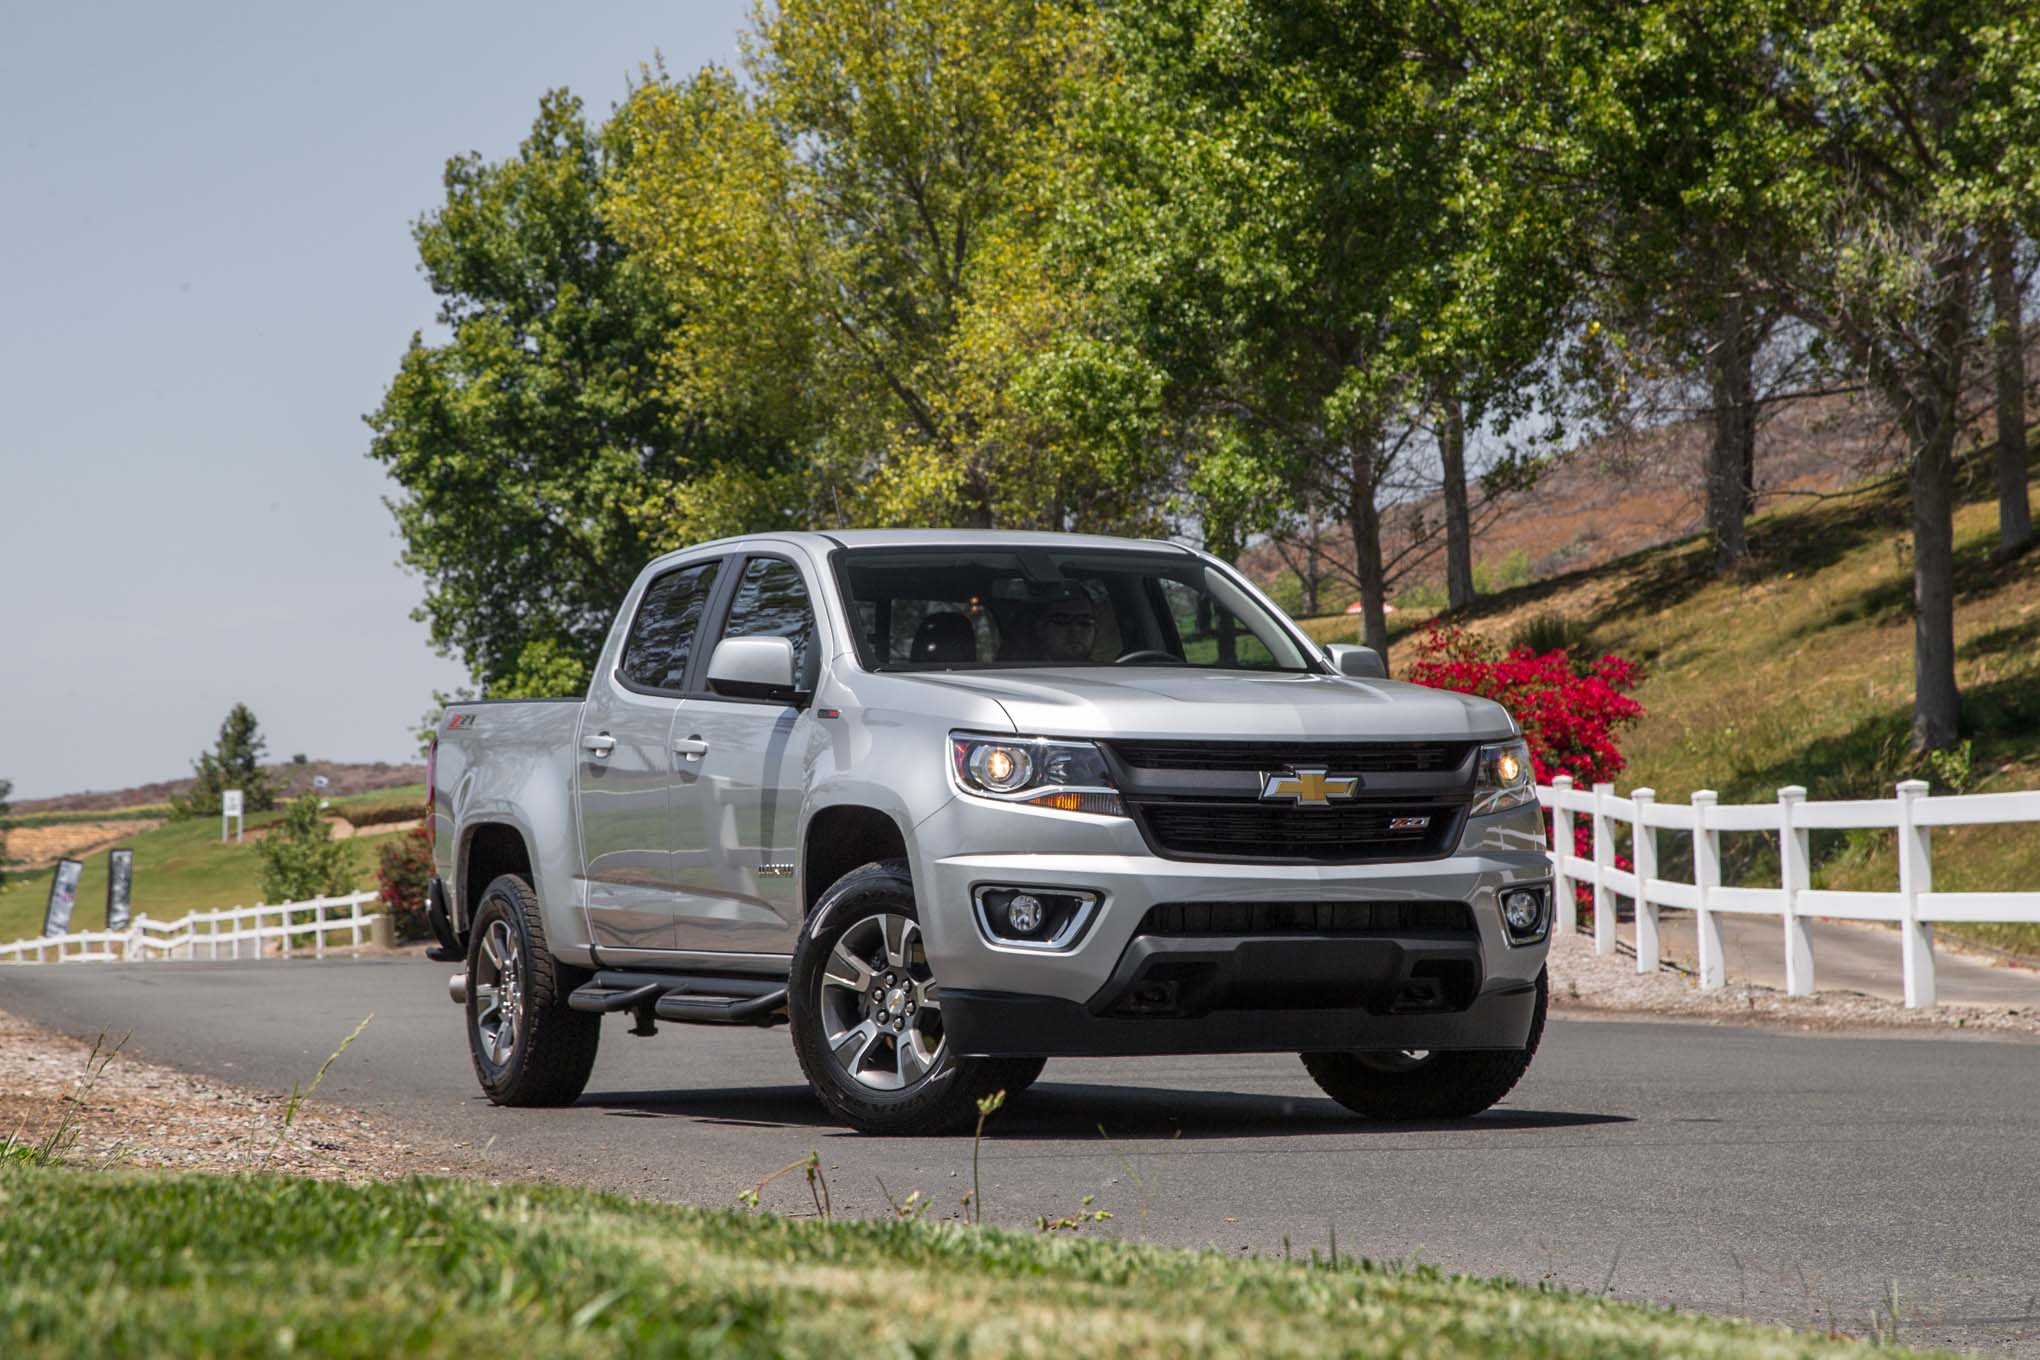 2017 Chevrolet Colorado Gets Updated V-6, Eight-Speed Auto | Automobile Magazine